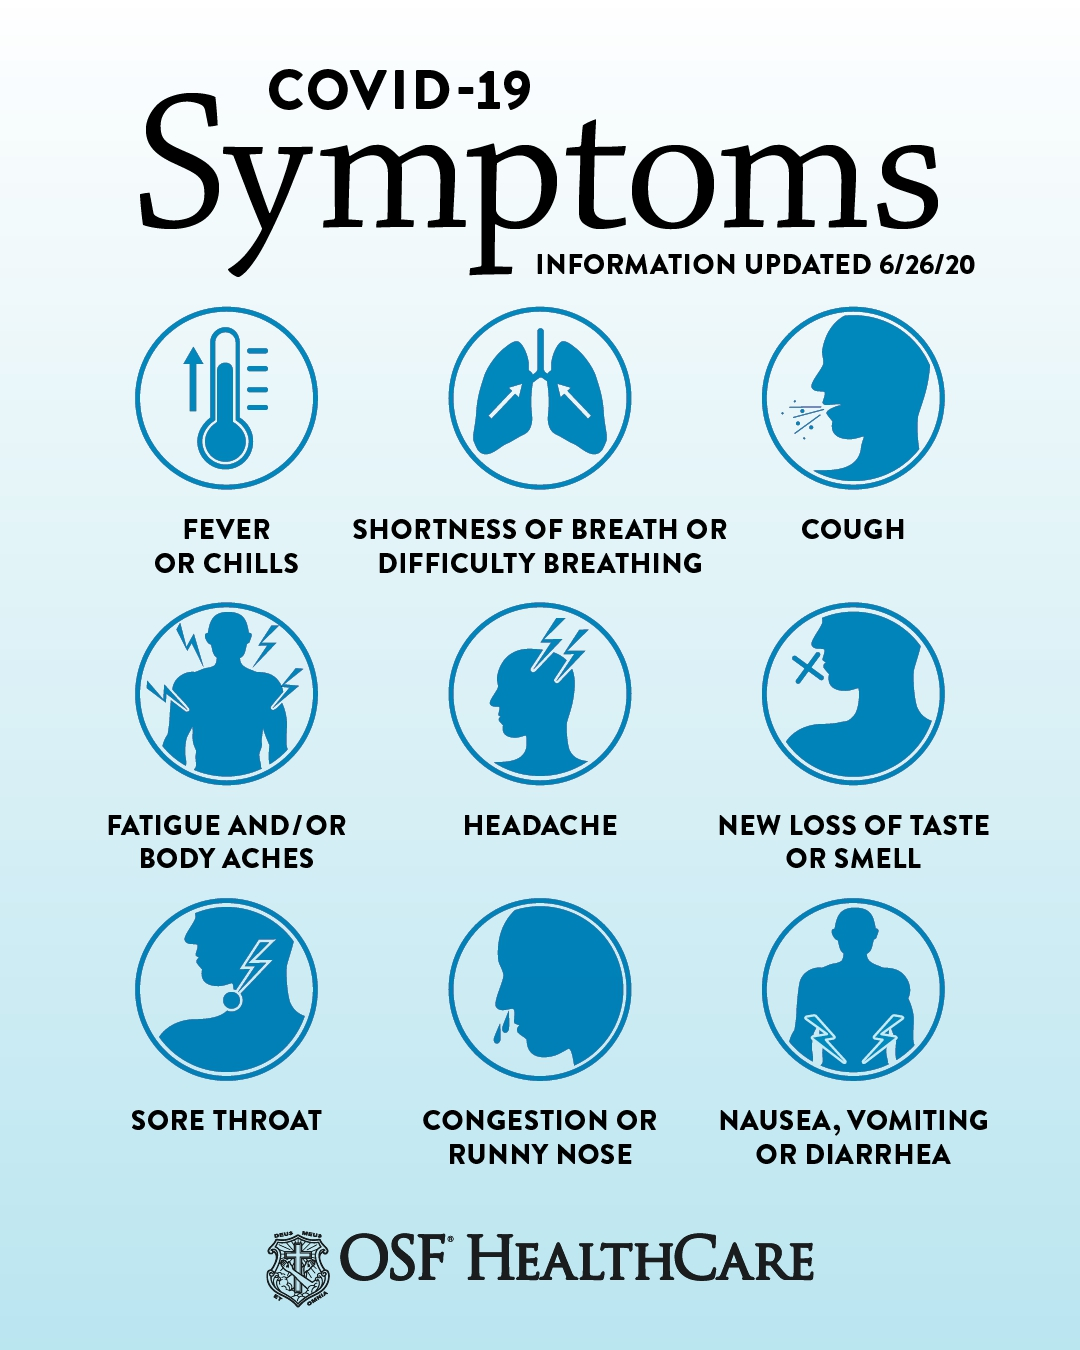 C19-Symptoms-Infographic-Icons_FIN.png